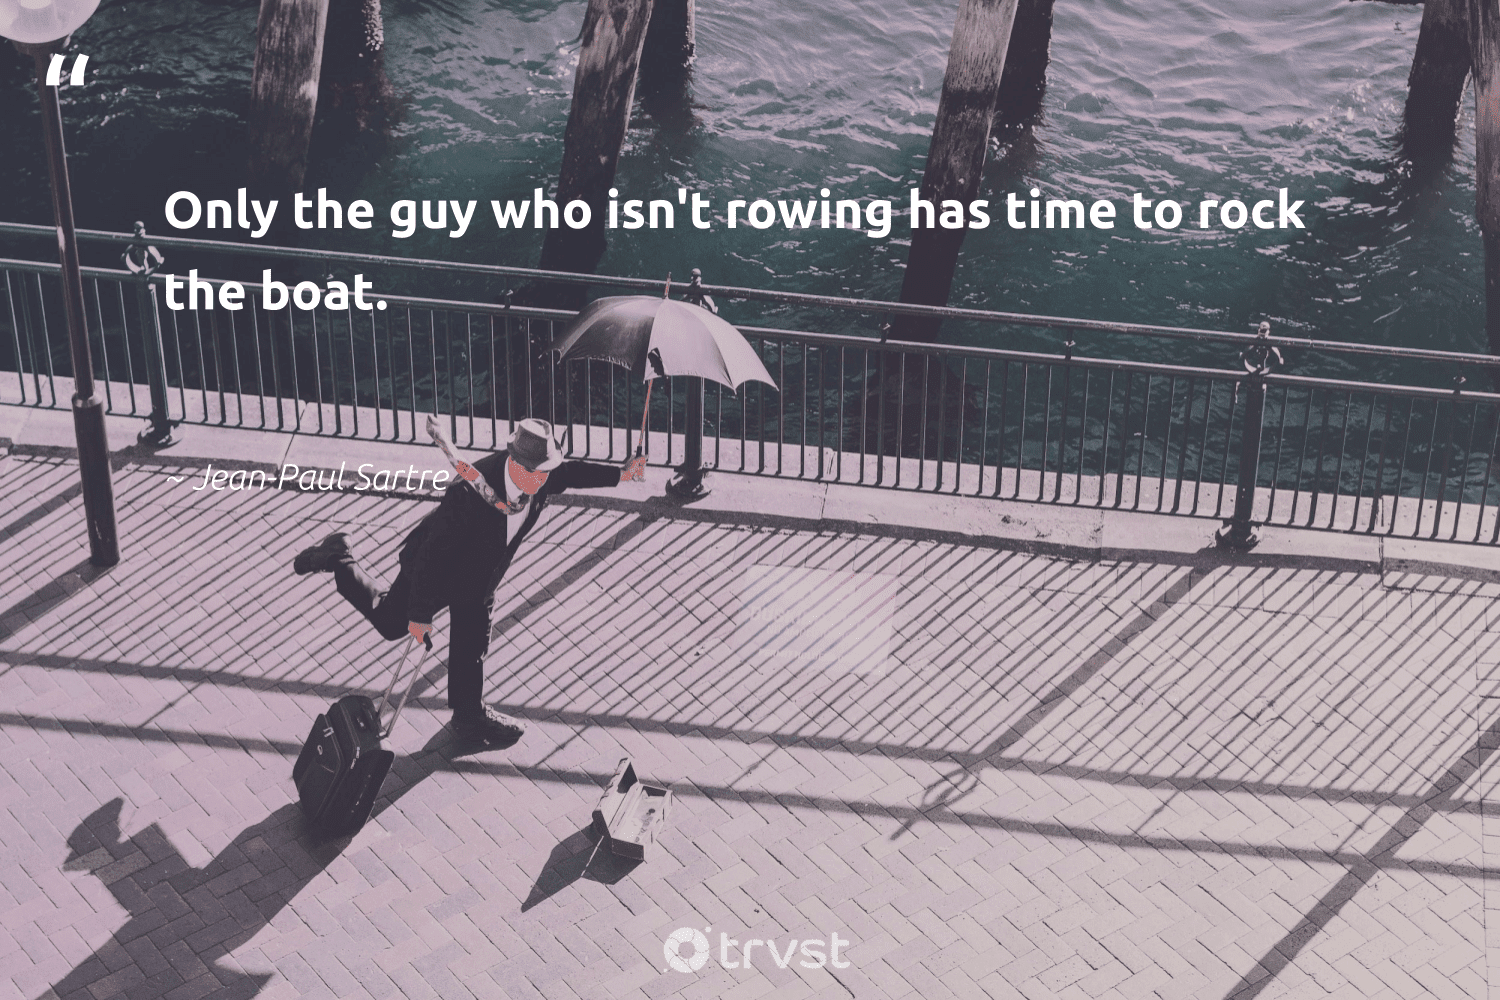 """Only the guy who isn't rowing has time to rock the boat.""  - Jean-Paul Sartre #trvst #quotes #futureofwork #collectiveaction #begreat #thinkgreen #softskills #takeaction #nevergiveup #dogood #dosomething #beinspired"